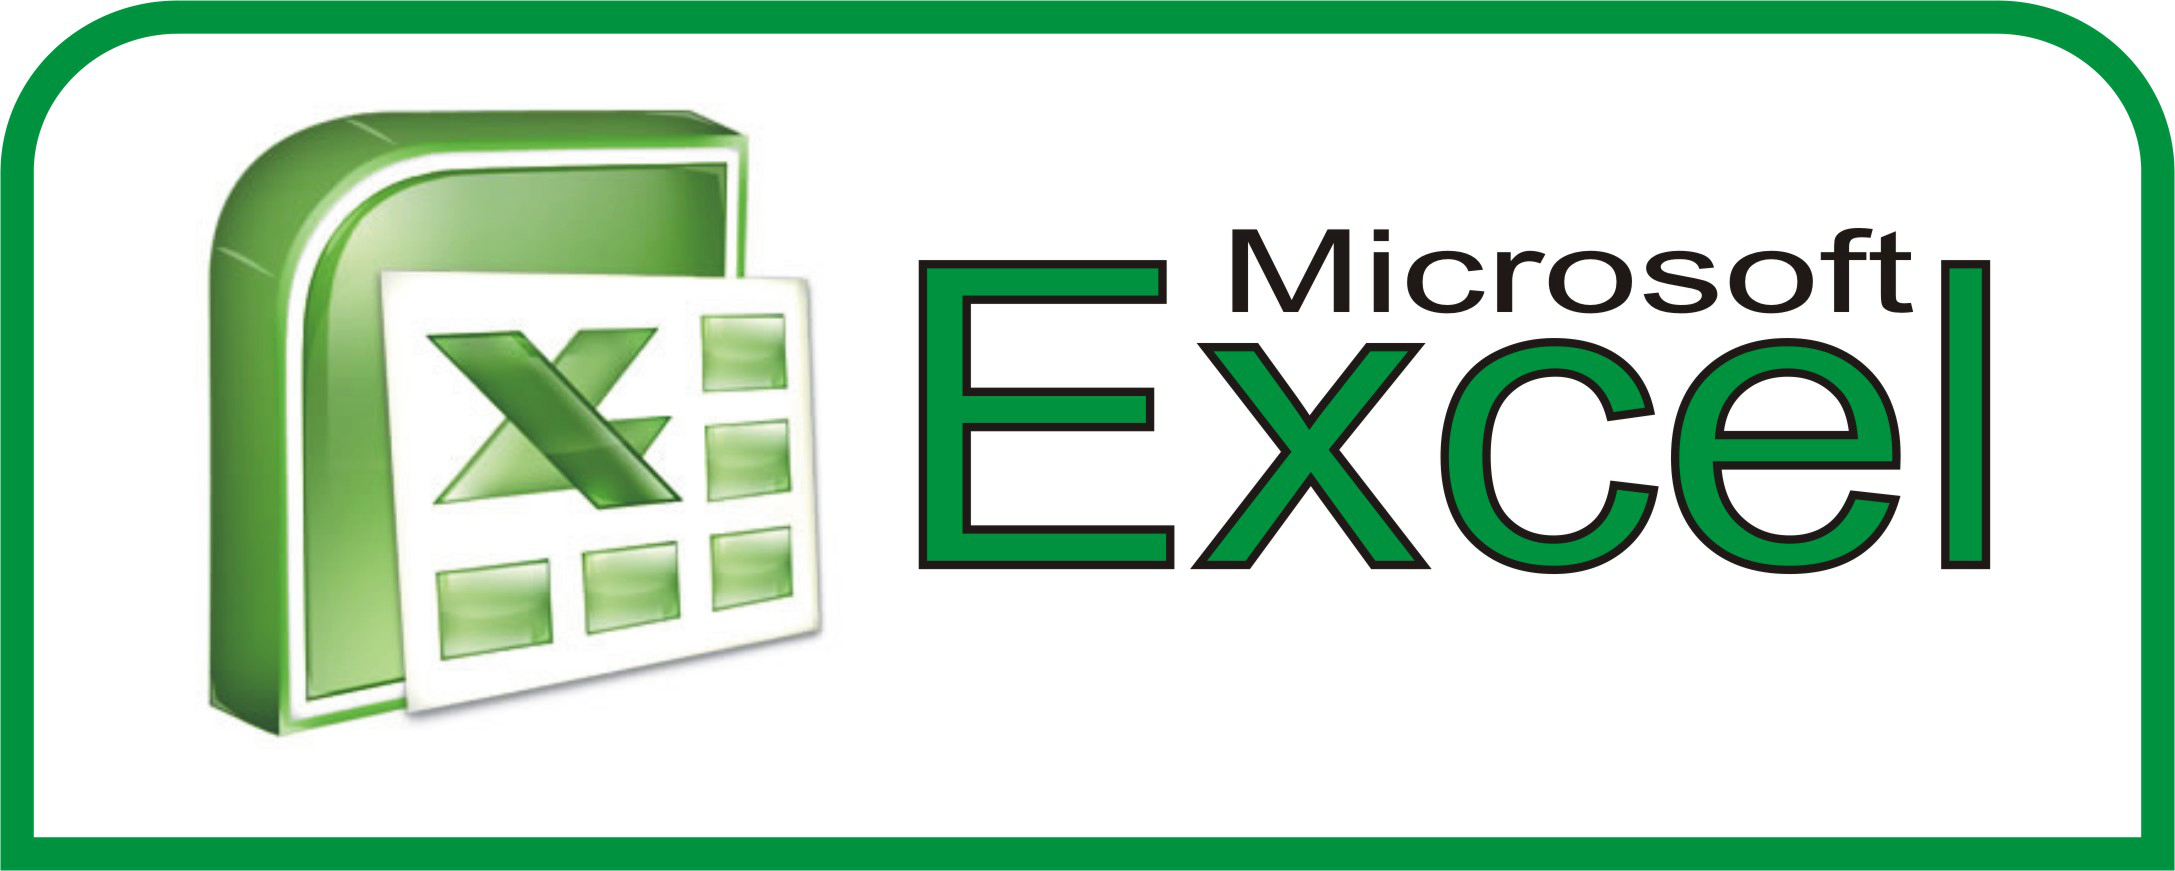 Ediblewildsus  Ravishing  Excel Shortcuts You Probably Didnt Know About  Techdissected With Gorgeous How To Swap Columns In Excel Besides Date Function In Excel Furthermore Excel Industries Hesston Ks With Charming Count Formula In Excel Also Excel Alternative In Addition Excel Pmt And How To Lock Rows In Excel As Well As How To Insert Sparklines In Excel Additionally Variance In Excel From Techdissectedcom With Ediblewildsus  Gorgeous  Excel Shortcuts You Probably Didnt Know About  Techdissected With Charming How To Swap Columns In Excel Besides Date Function In Excel Furthermore Excel Industries Hesston Ks And Ravishing Count Formula In Excel Also Excel Alternative In Addition Excel Pmt From Techdissectedcom